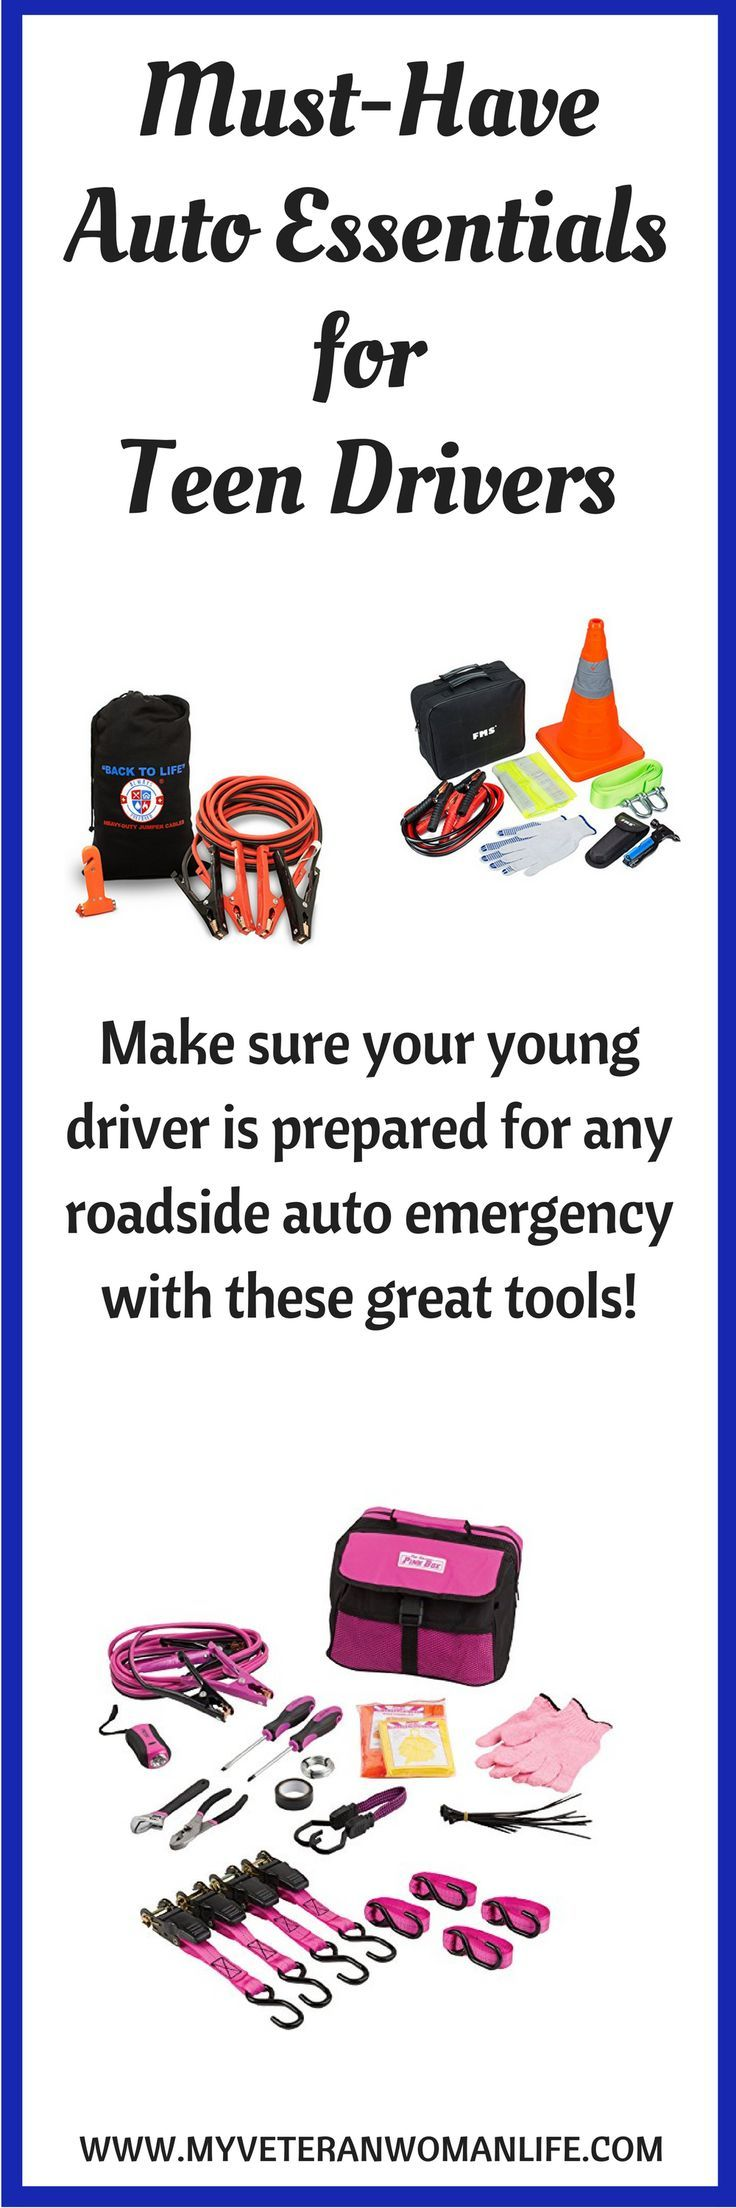 Make sure you teen is ready for any emergency with these must-have auto essentials for teen drivers!  Jumper cables, flashlights, tire pressure gauge, reflective markers, and more.